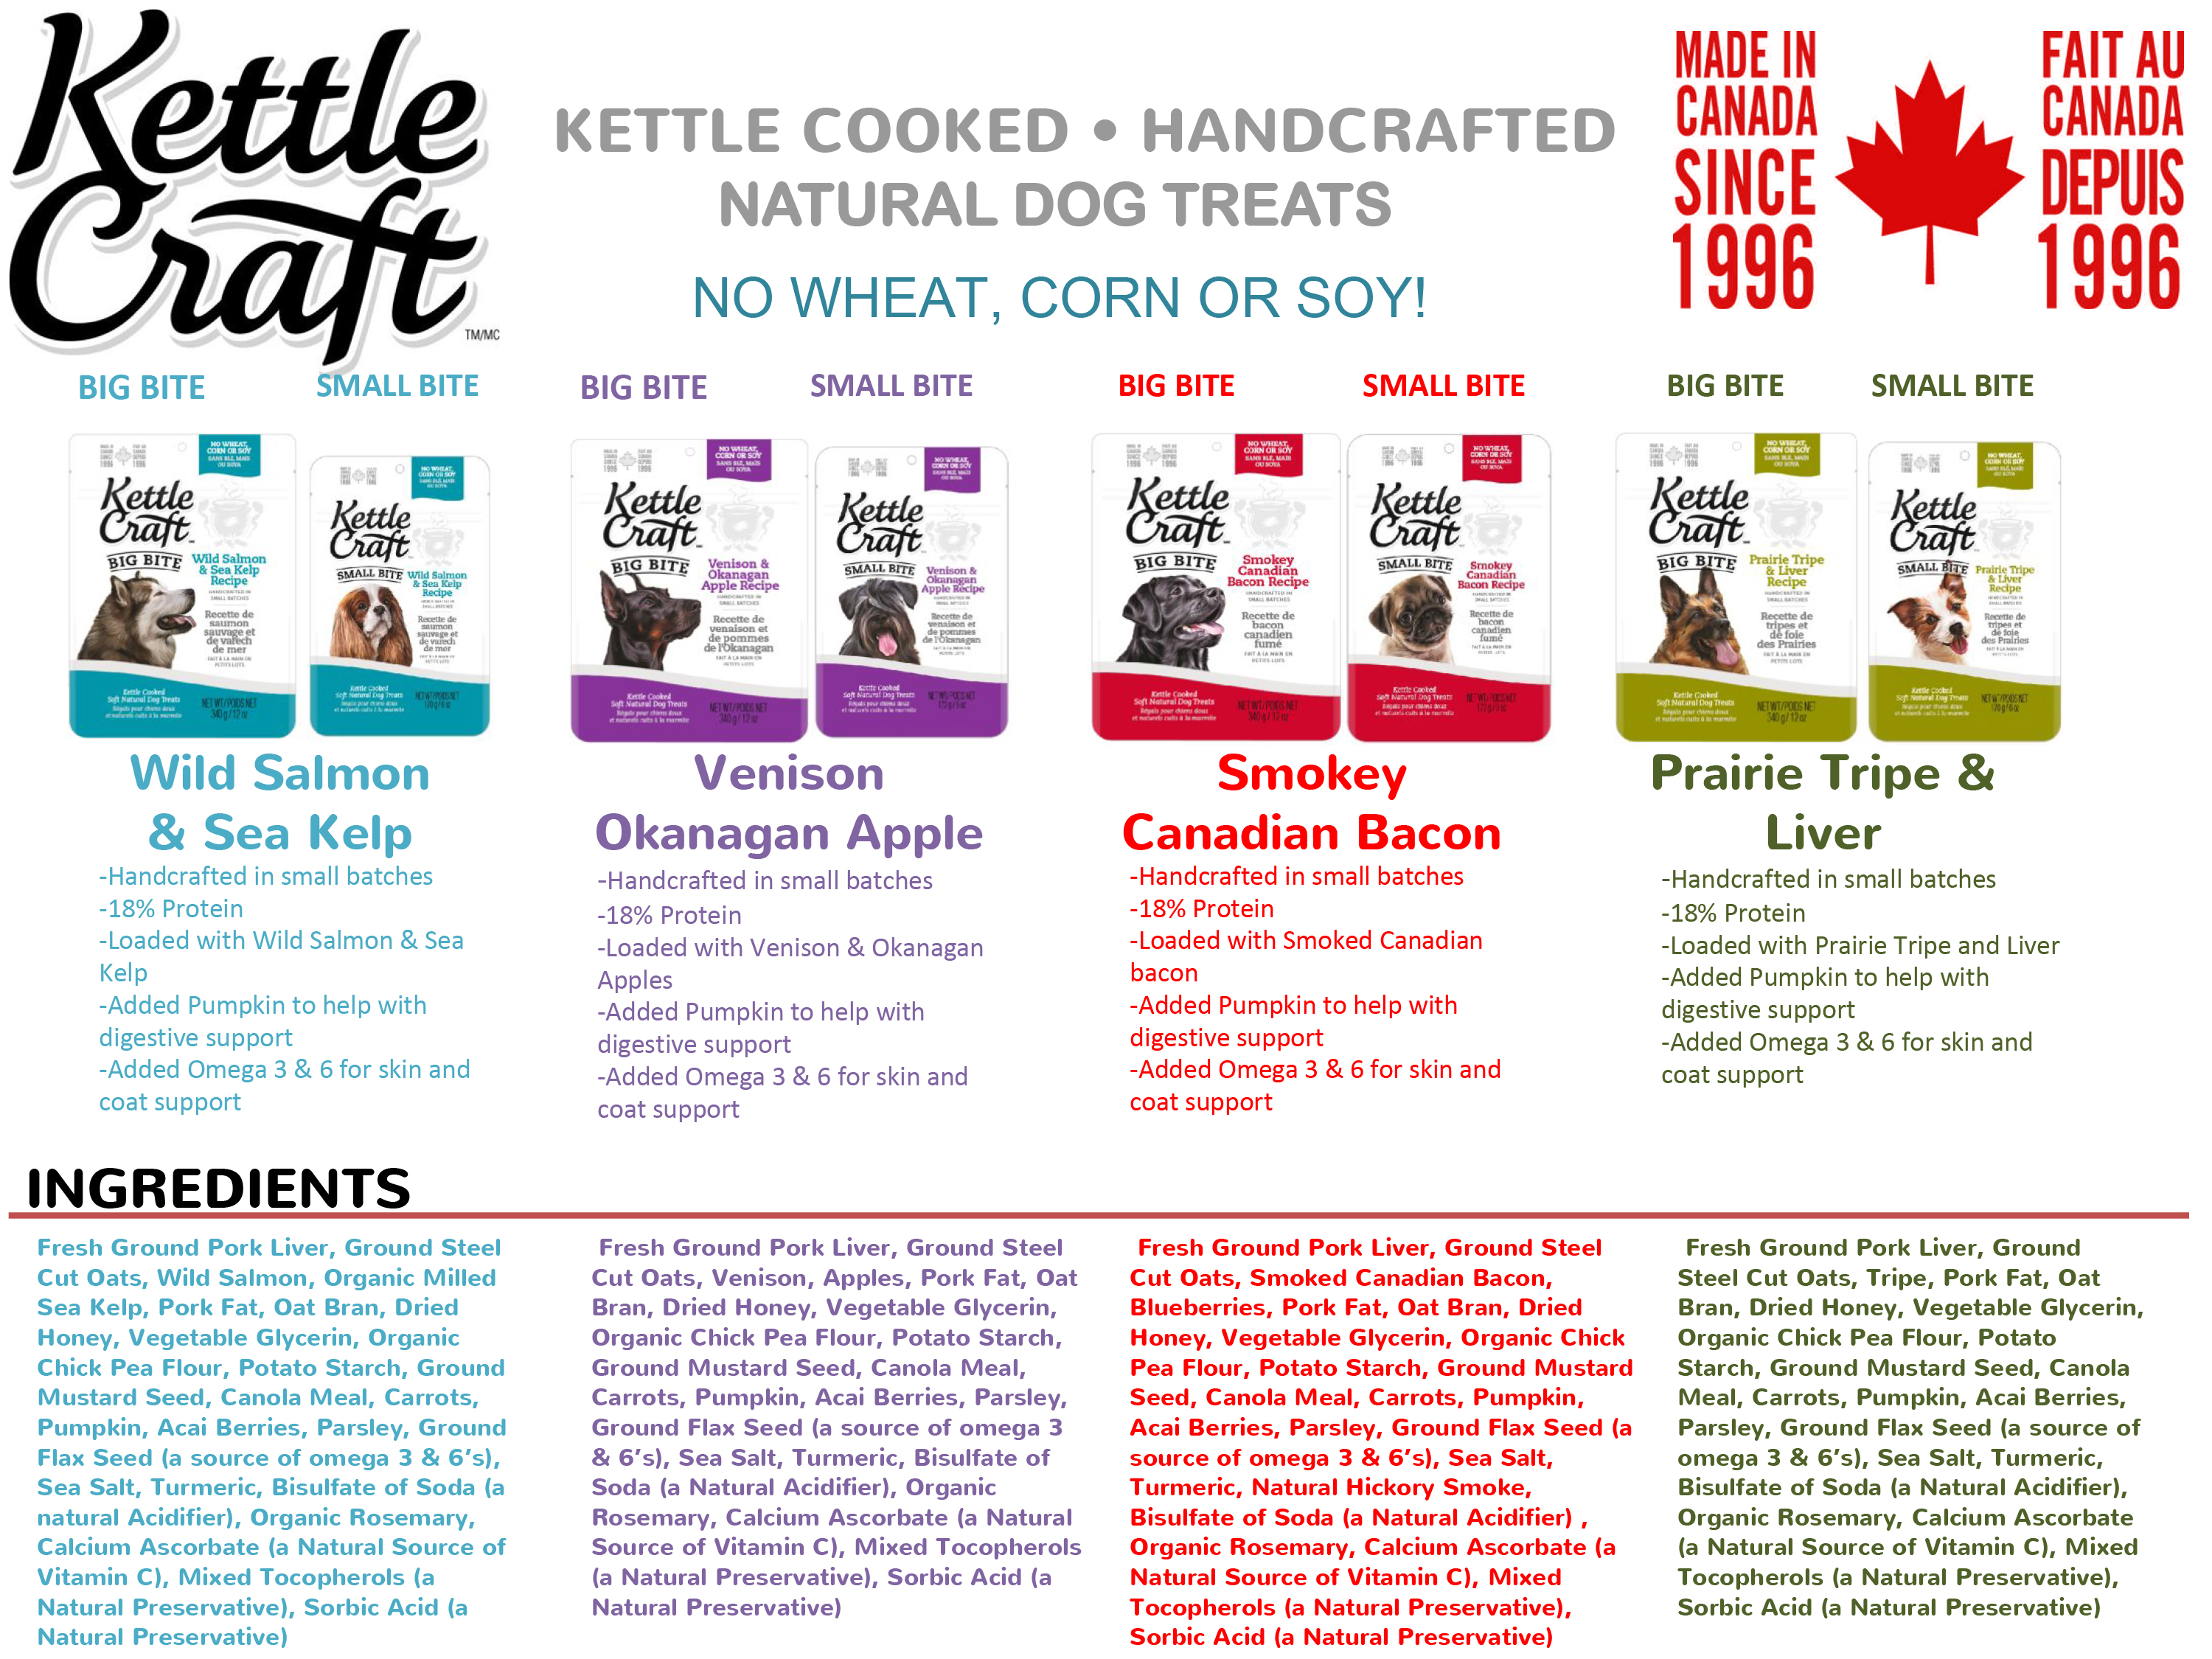 KettleCraft Dog Product Information